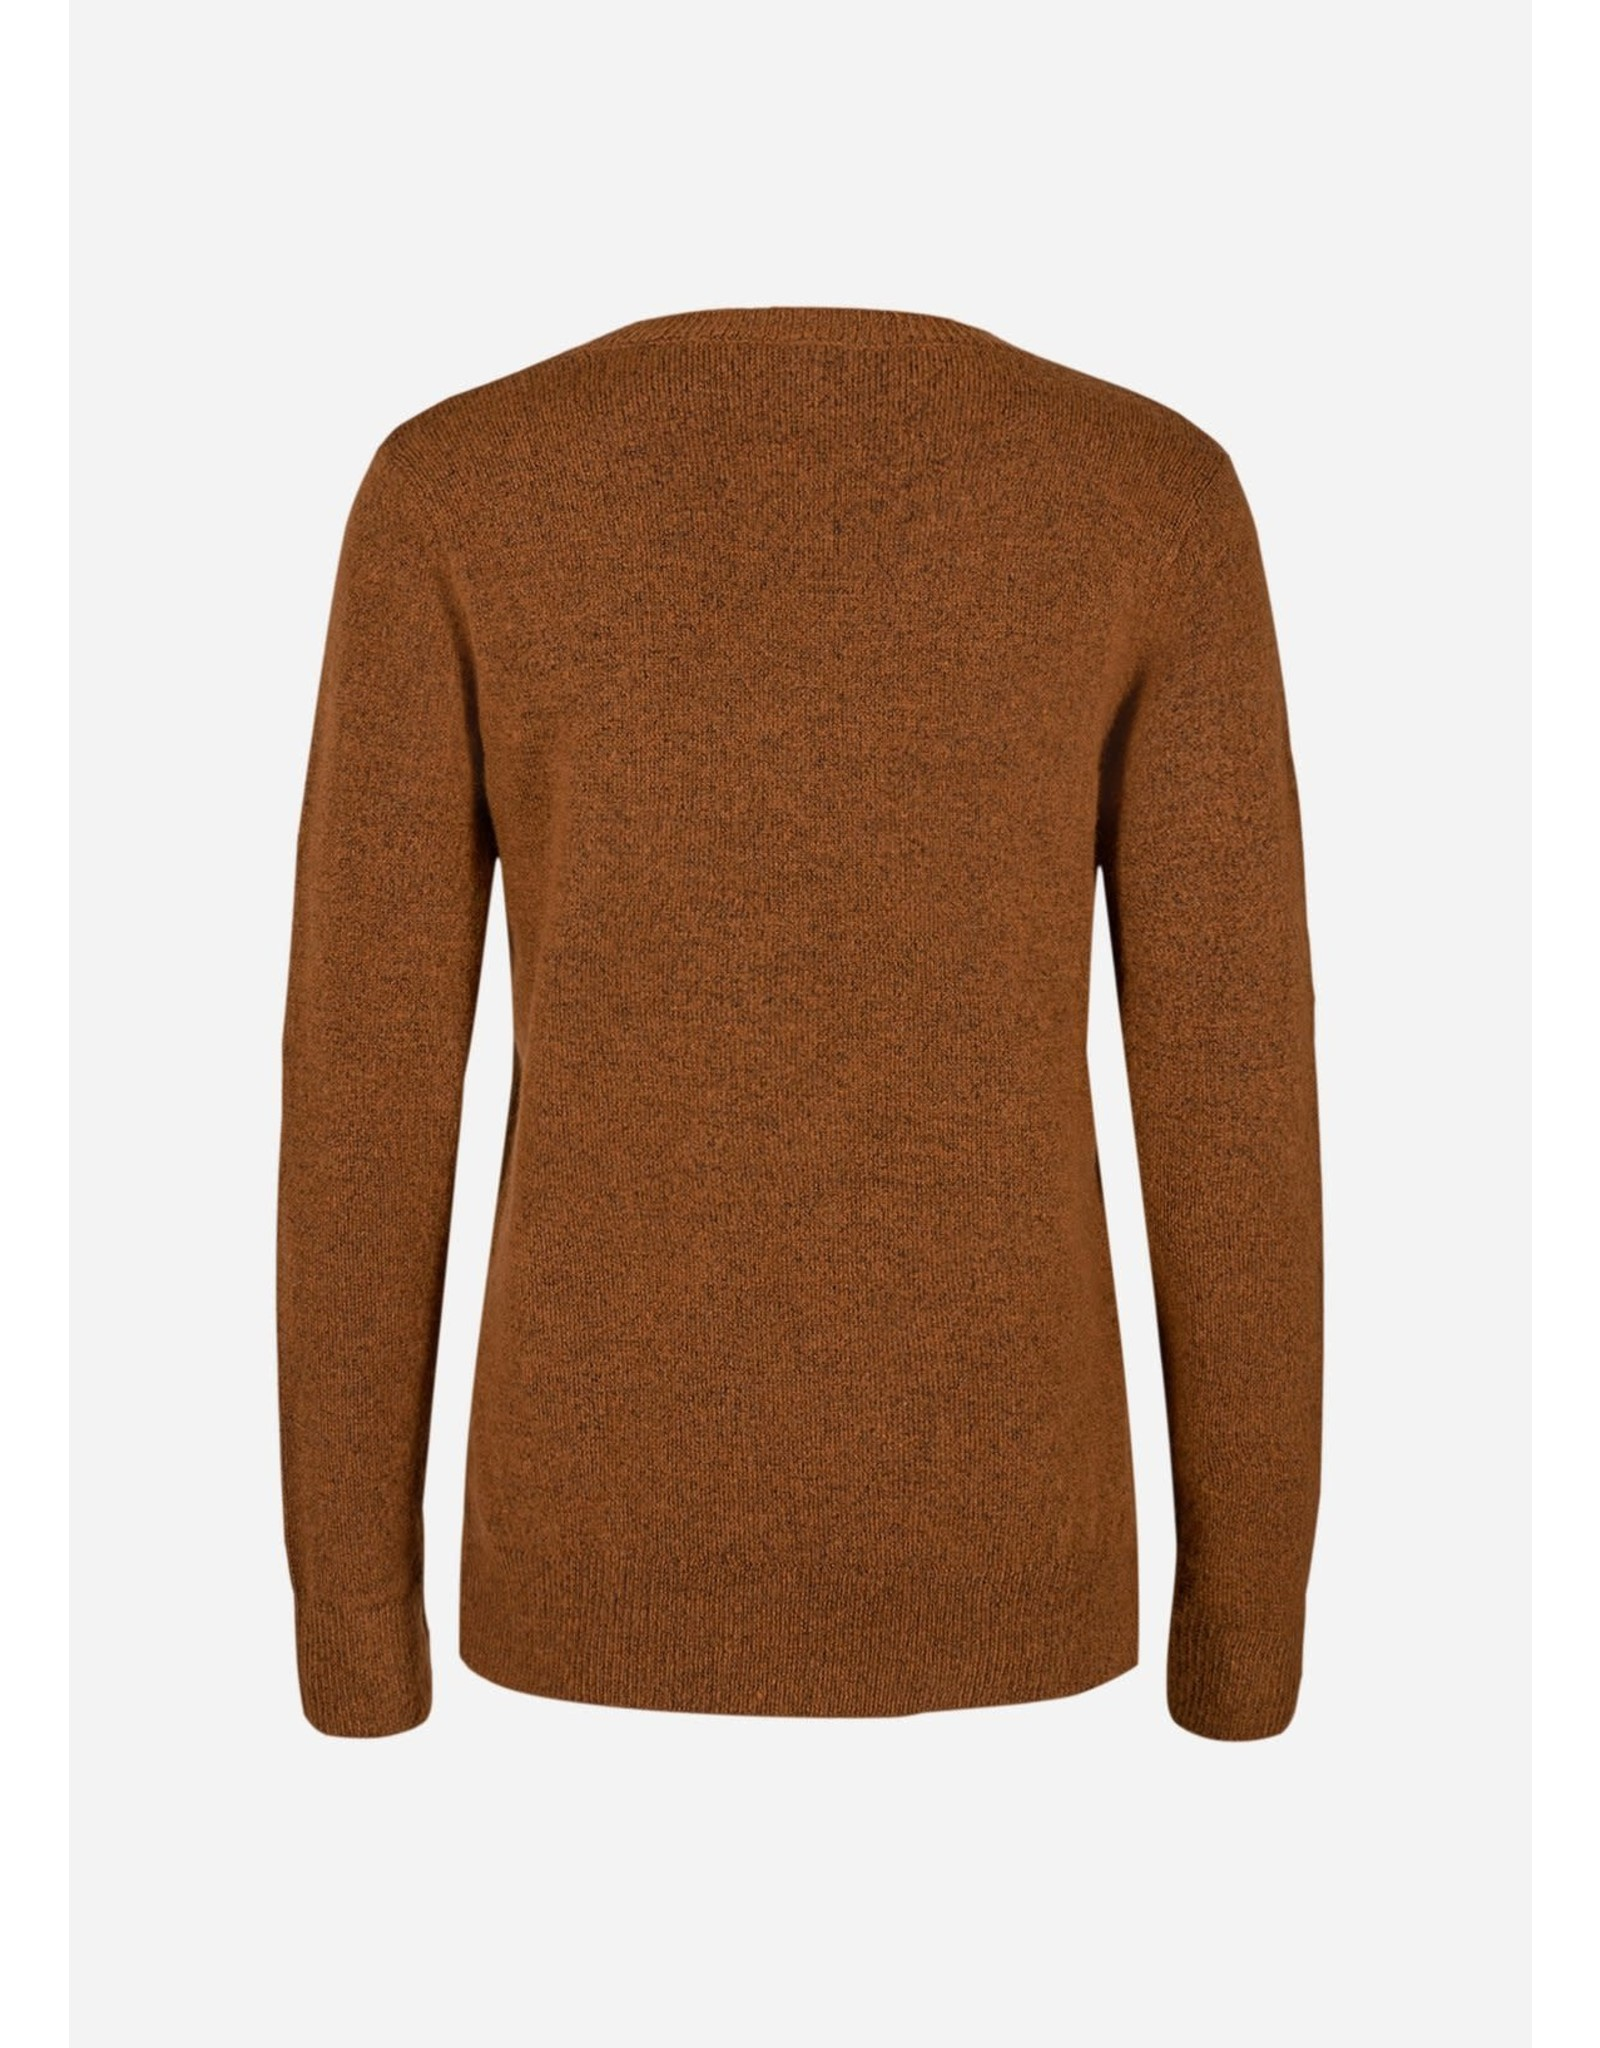 Soyaconcept Soyaconcept - Nessie rust sweater